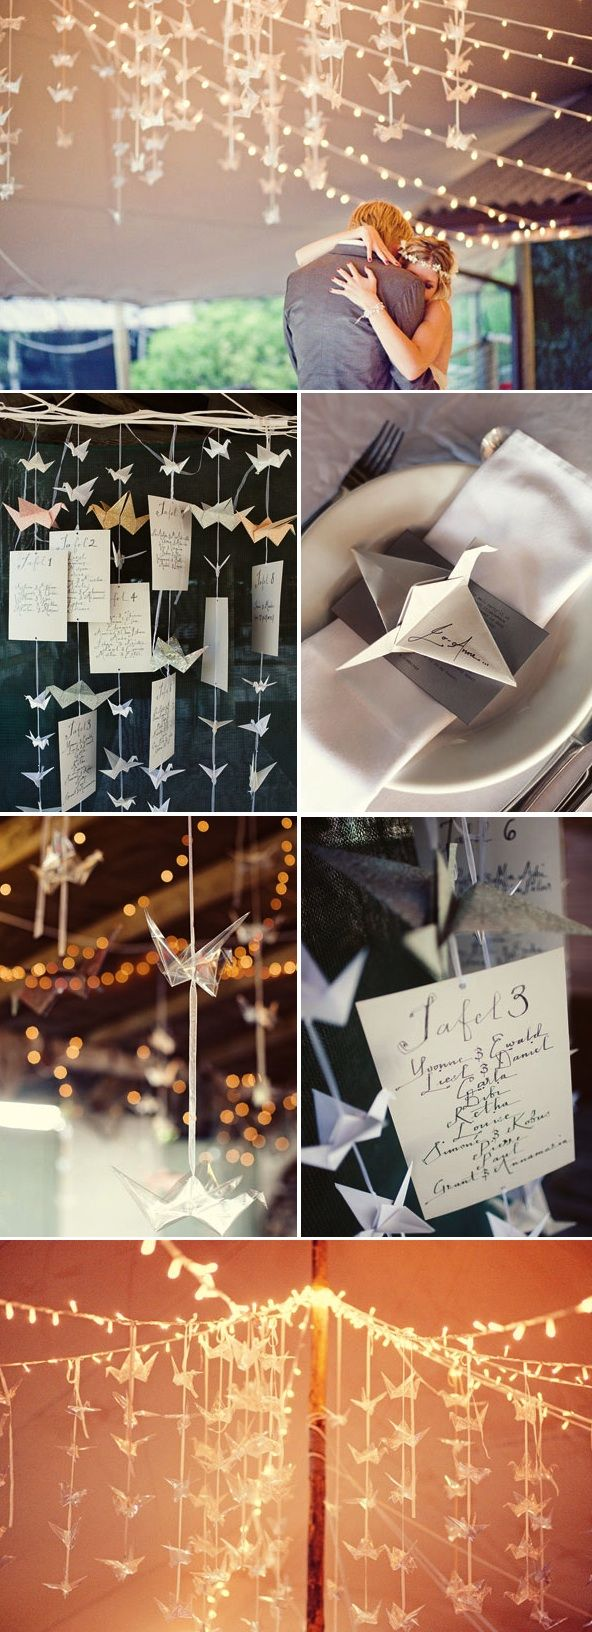 -Paper Crane Wedding Decor- » Alexan Events | Denver Wedding Planners, Colorado Wedding and Event Planning  | followpics.co